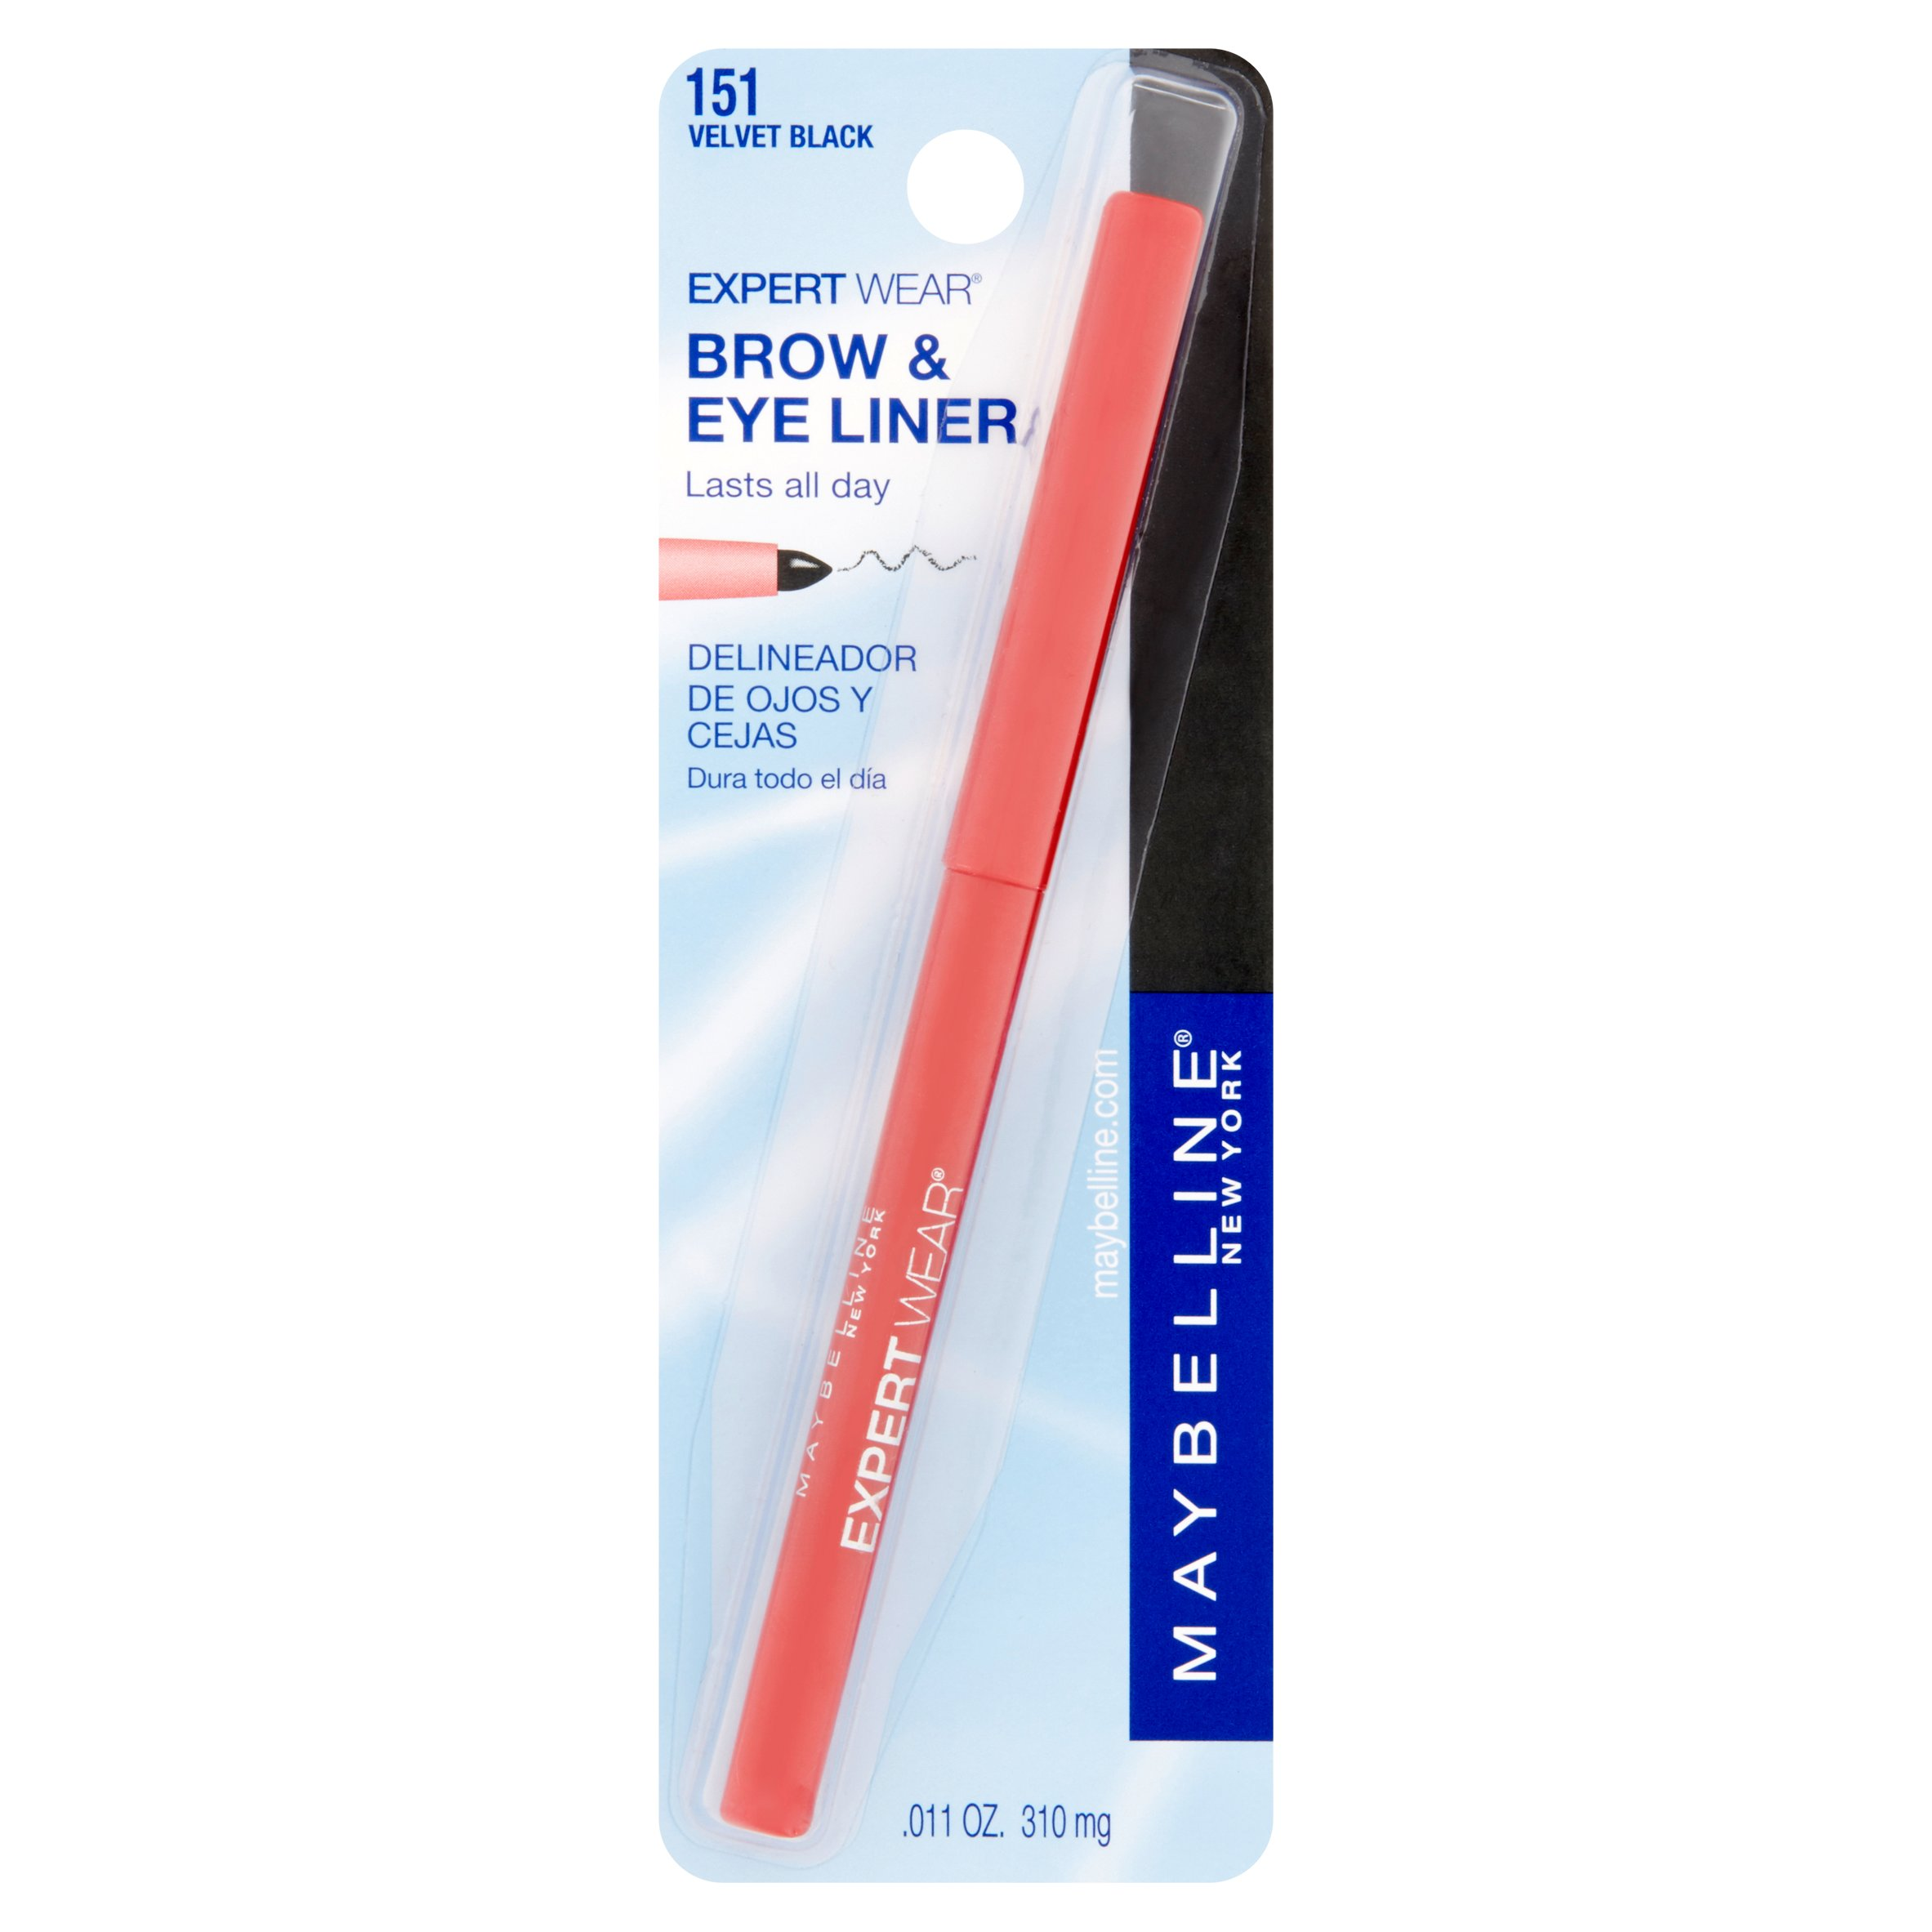 Maybelline Expert Wear Brow & Eyeliner Pencil, Dark Brown